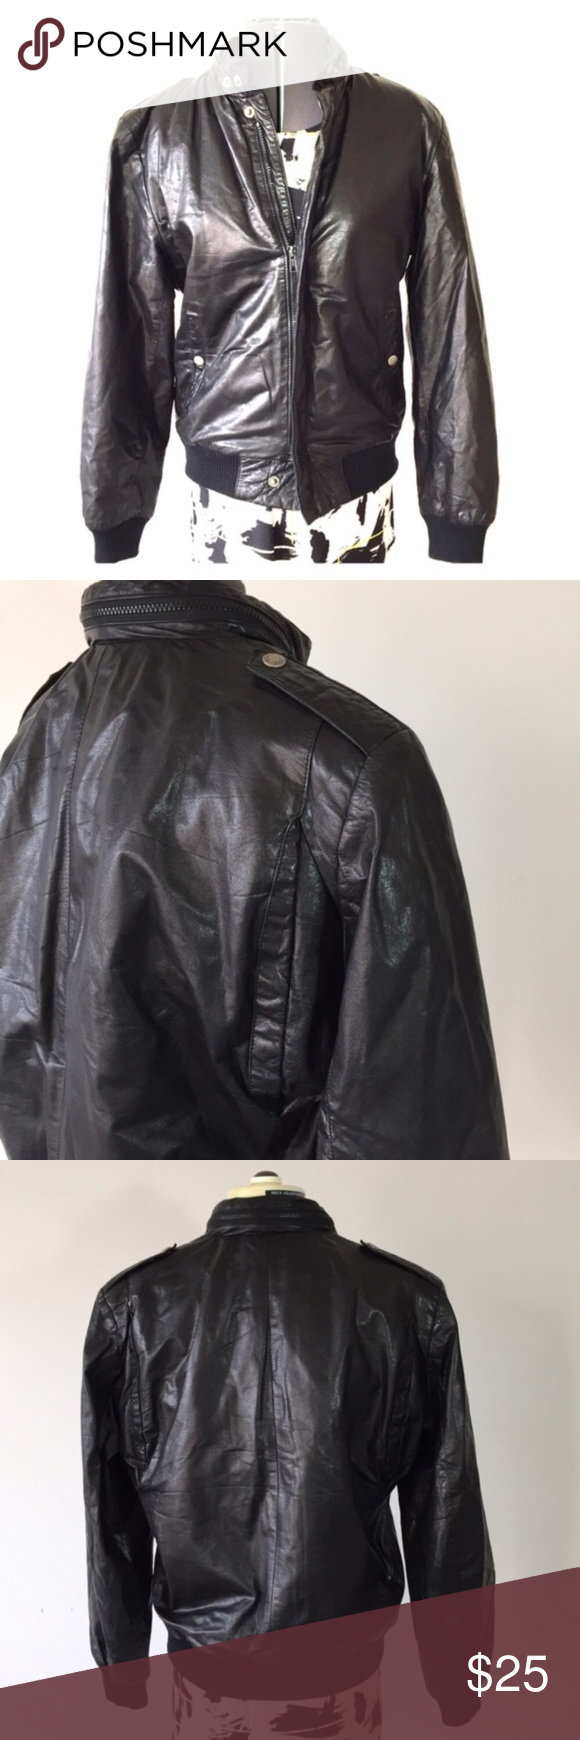 Vintage Leather Bomber Jacket Flaw Inside No Size Bomber